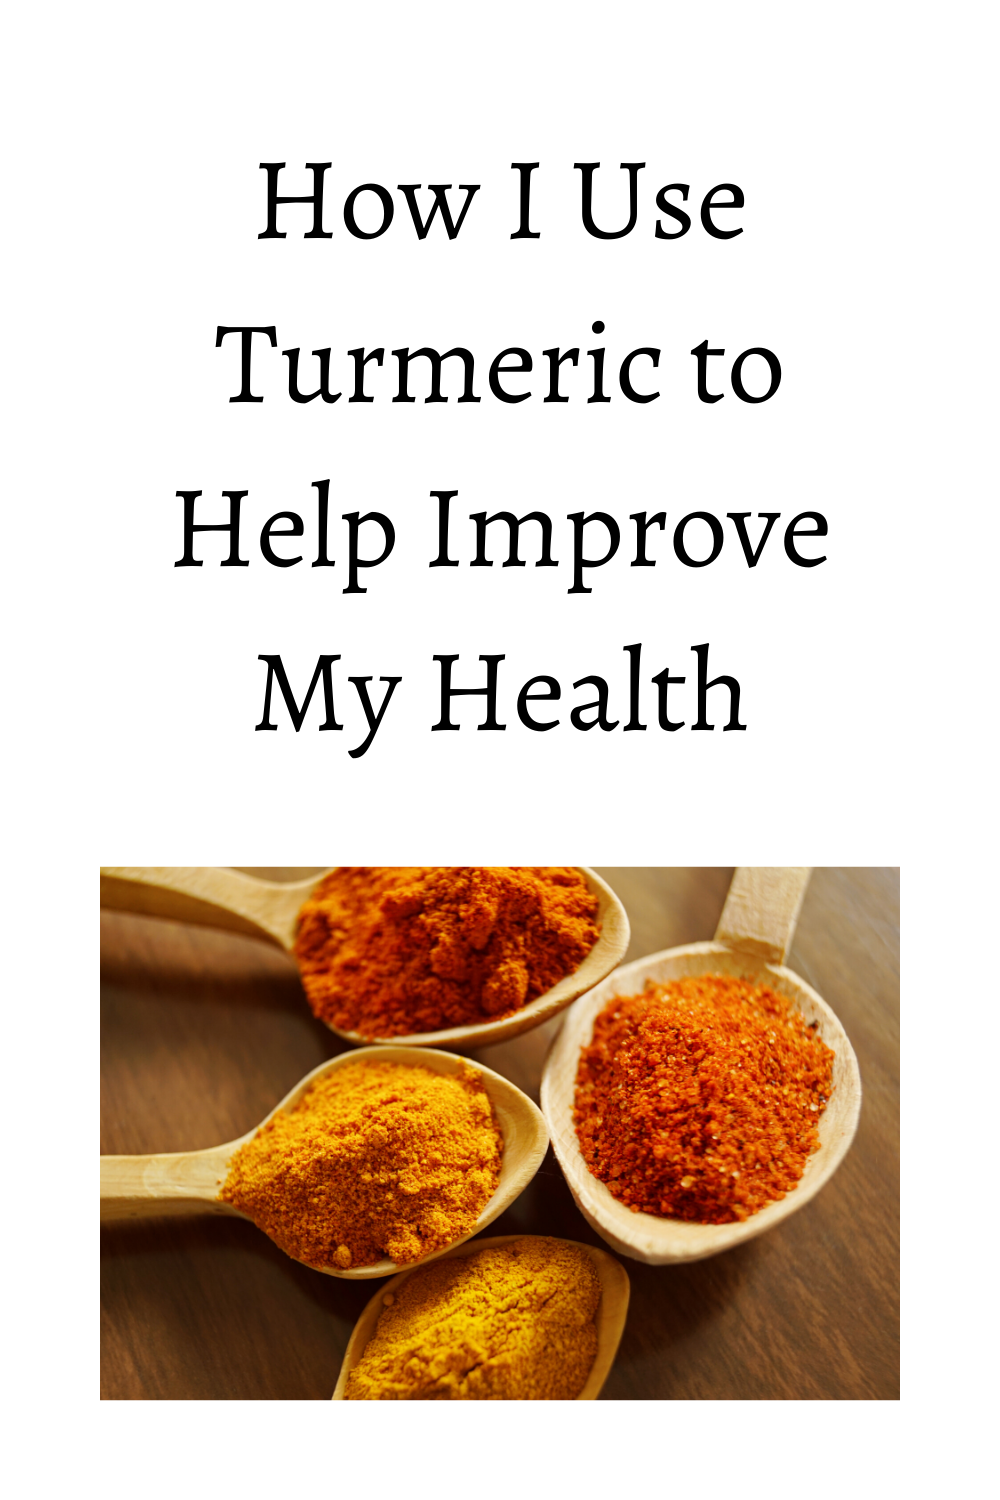 How I Use Turmeric to Help Improve My Health